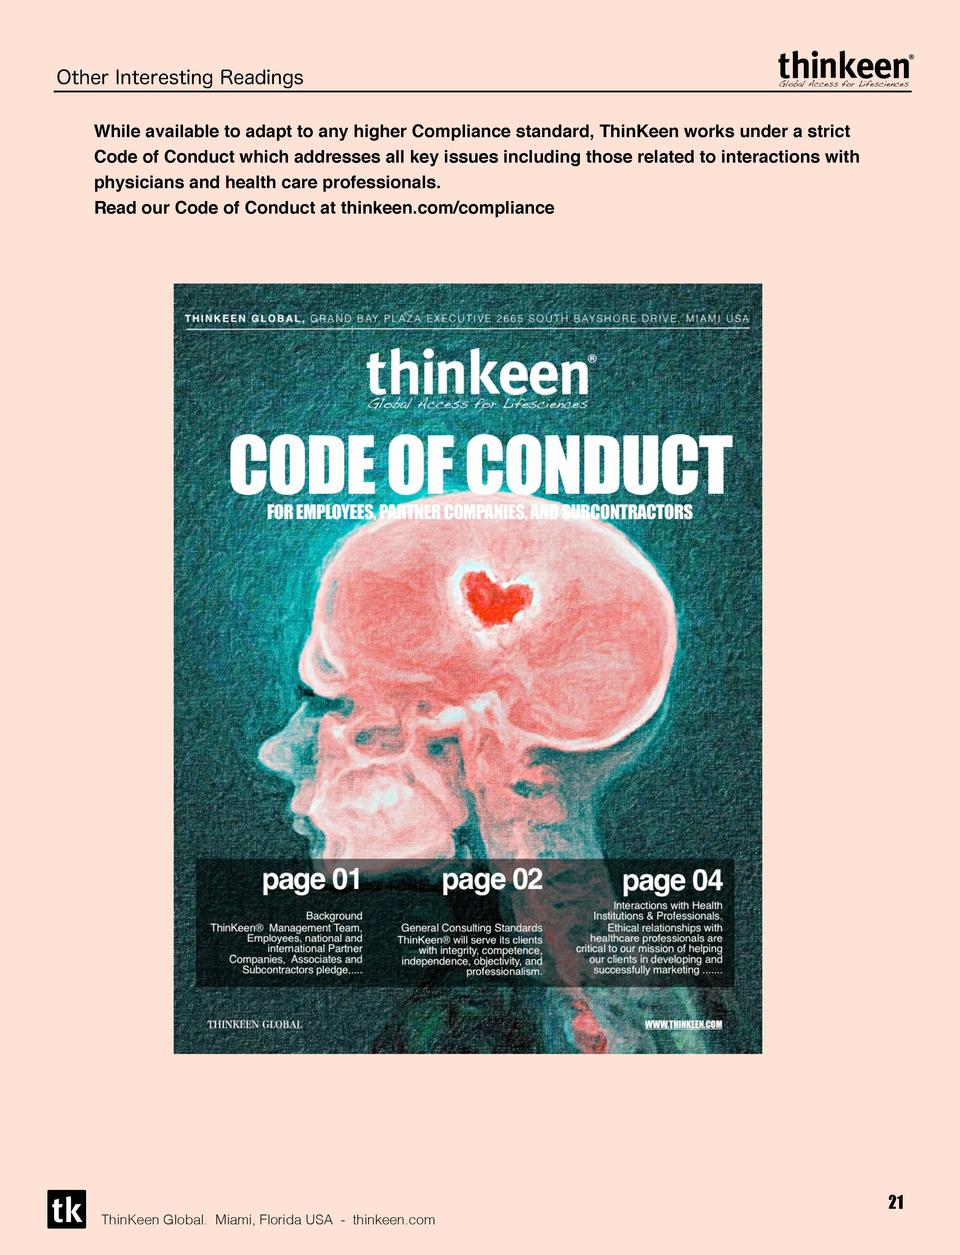 Other Interesting Readings While available to adapt to any higher Compliance standard, ThinKeen works under a strict Code ...